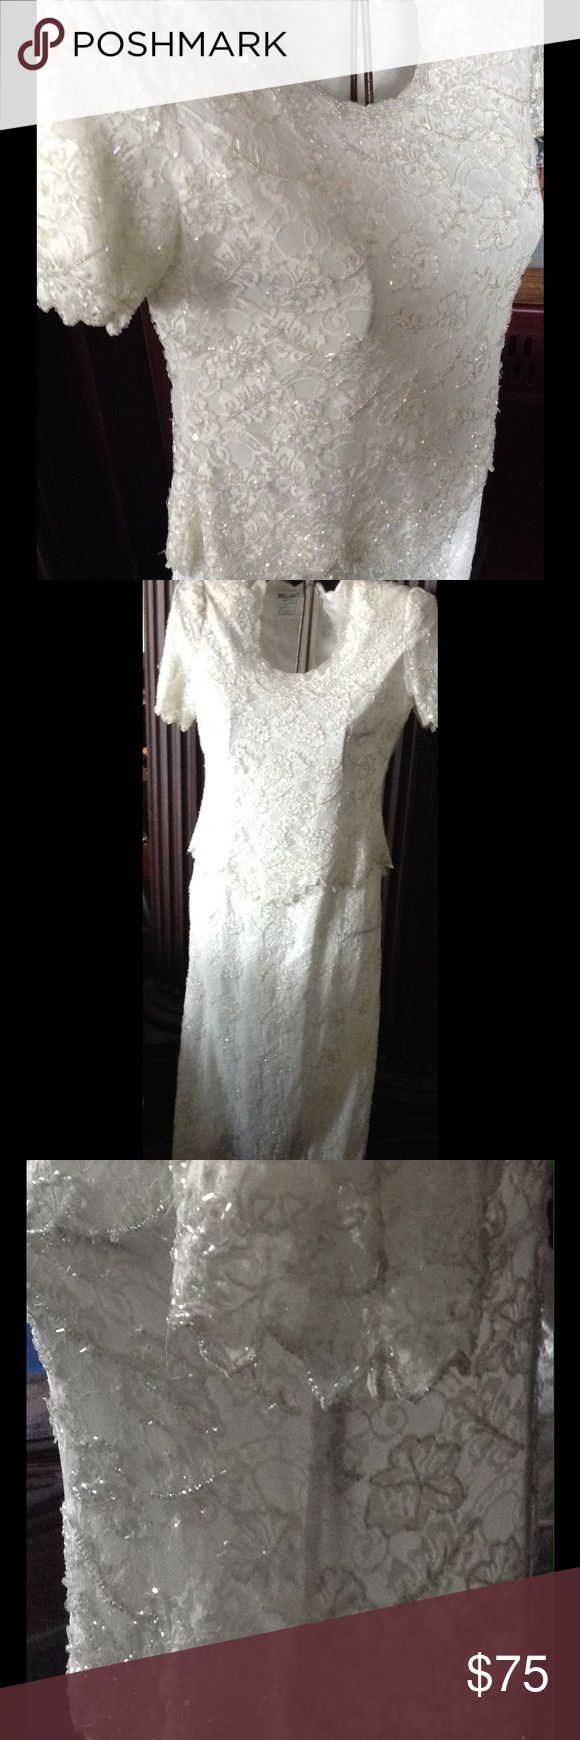 dillards wedding dresses dillards wedding dress Beautifully laced cocktail or wedding dress NWT